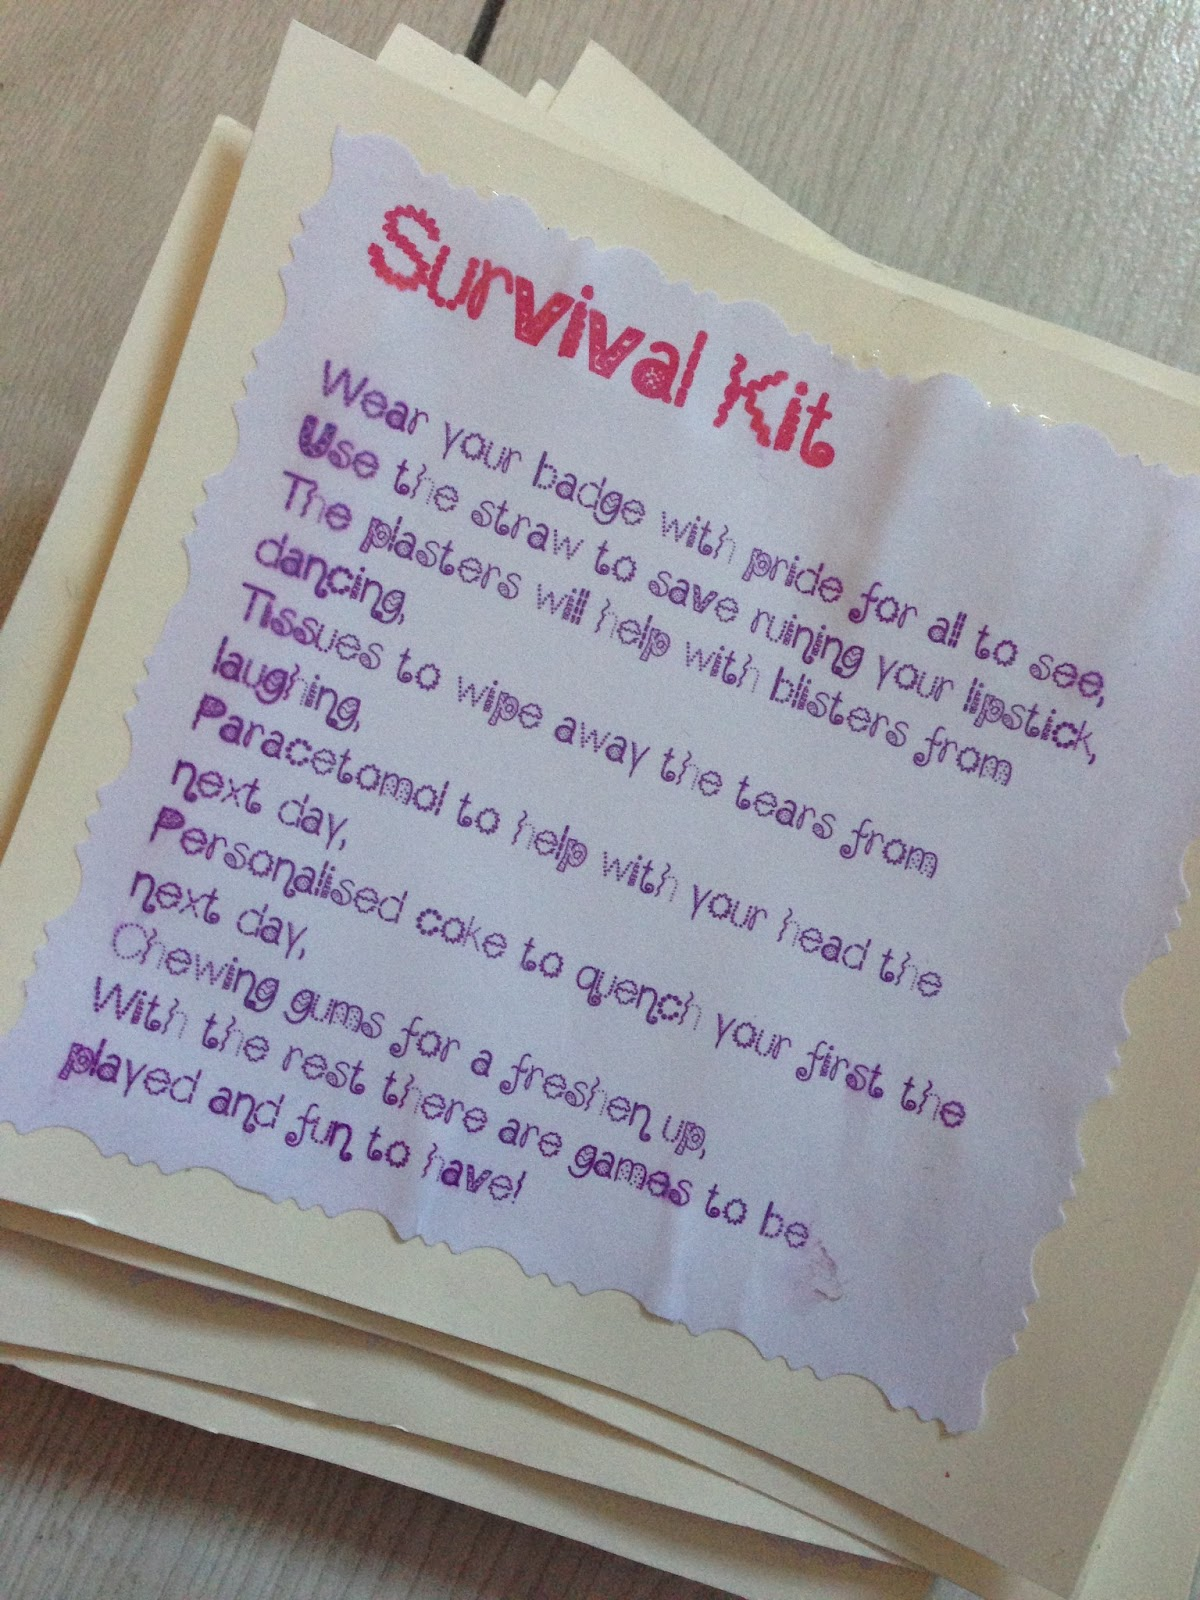 My Sister And I Decided To Put Together A Survival Kit For All Of The S We Included Bottle E With Their Names On They Don T Do Sa But